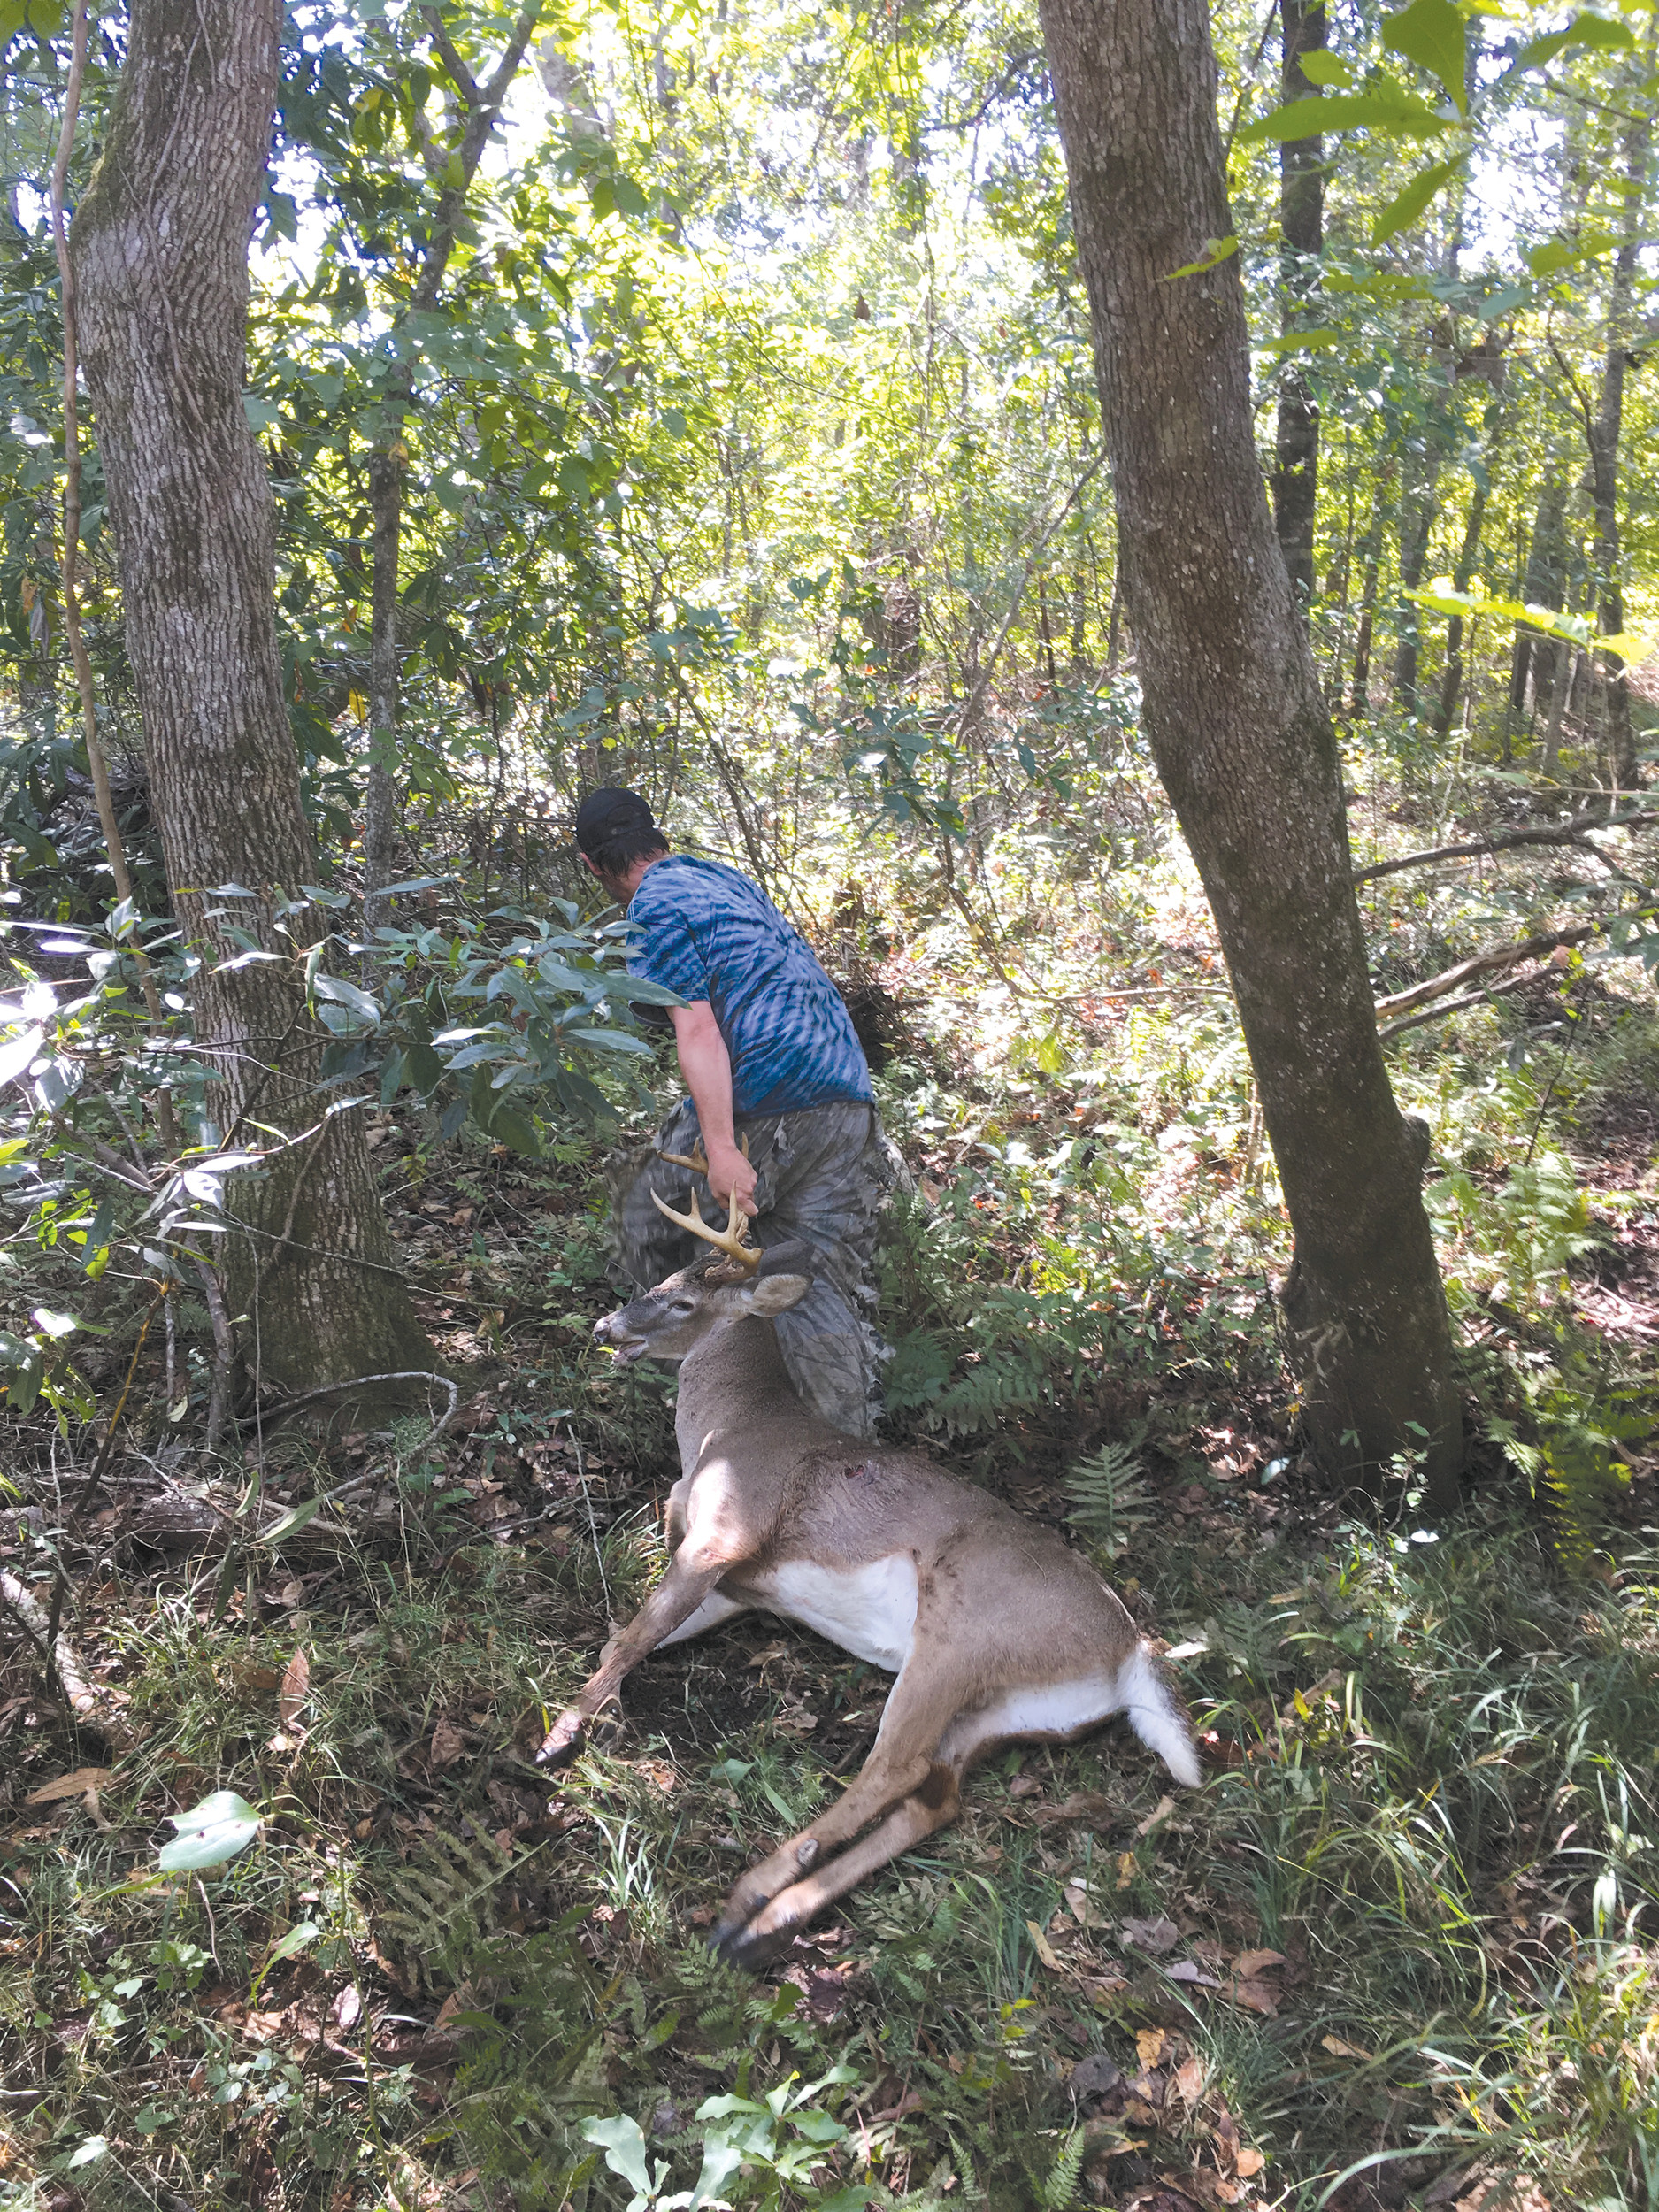 Clayton Geddings takes a turn pulling his 9-point buck out of the woods.